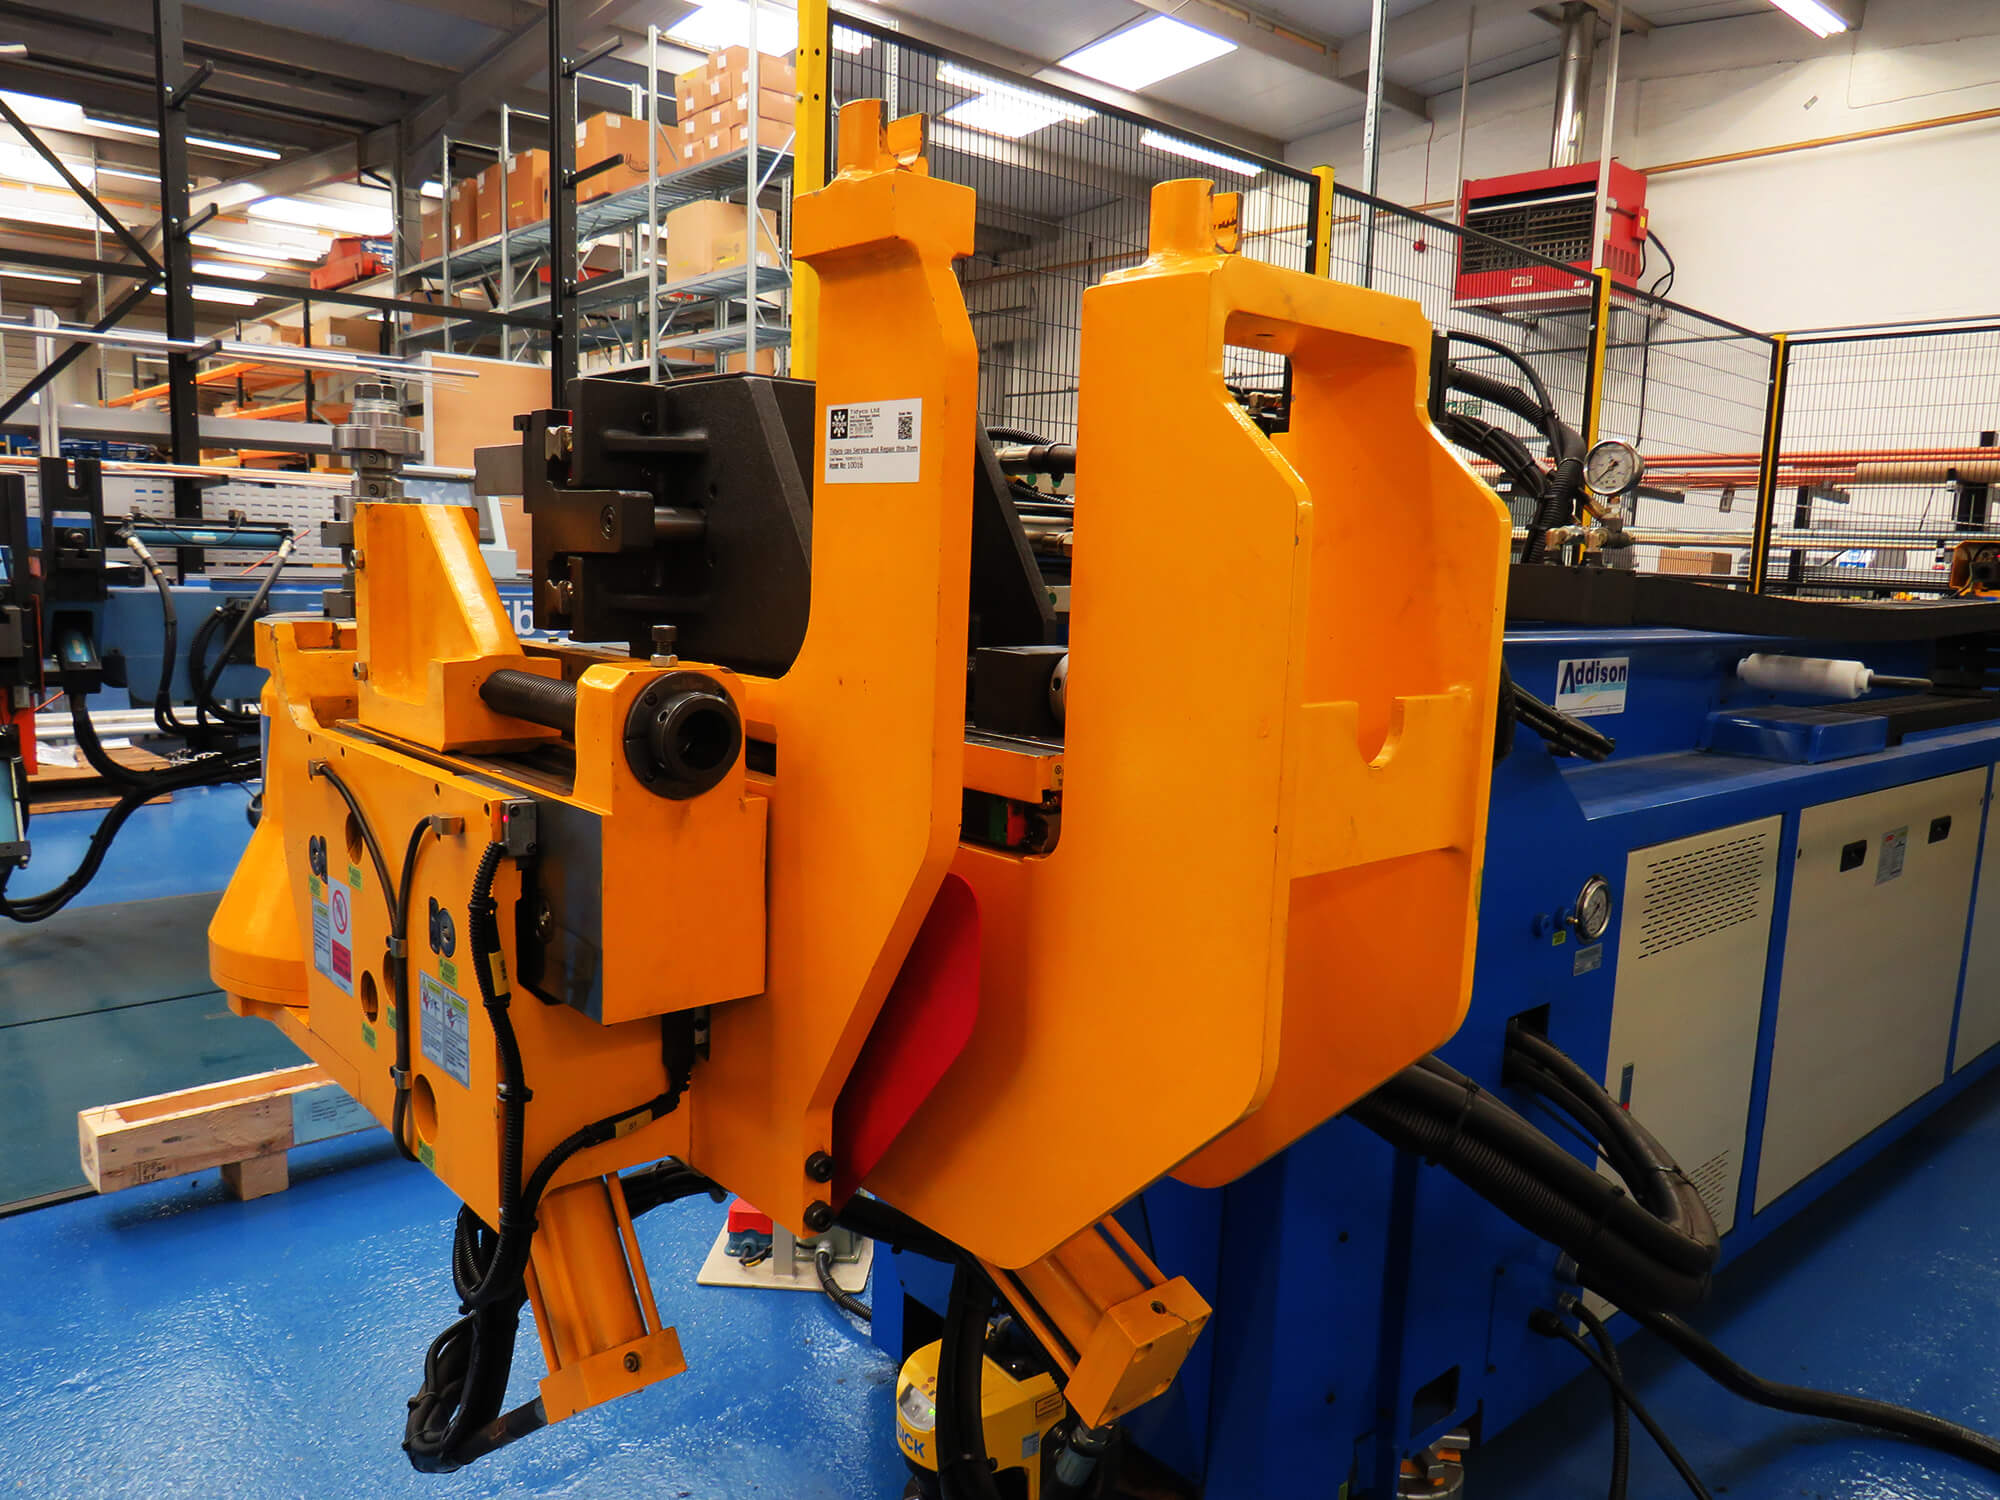 A large orange machine in a factory used to bend products